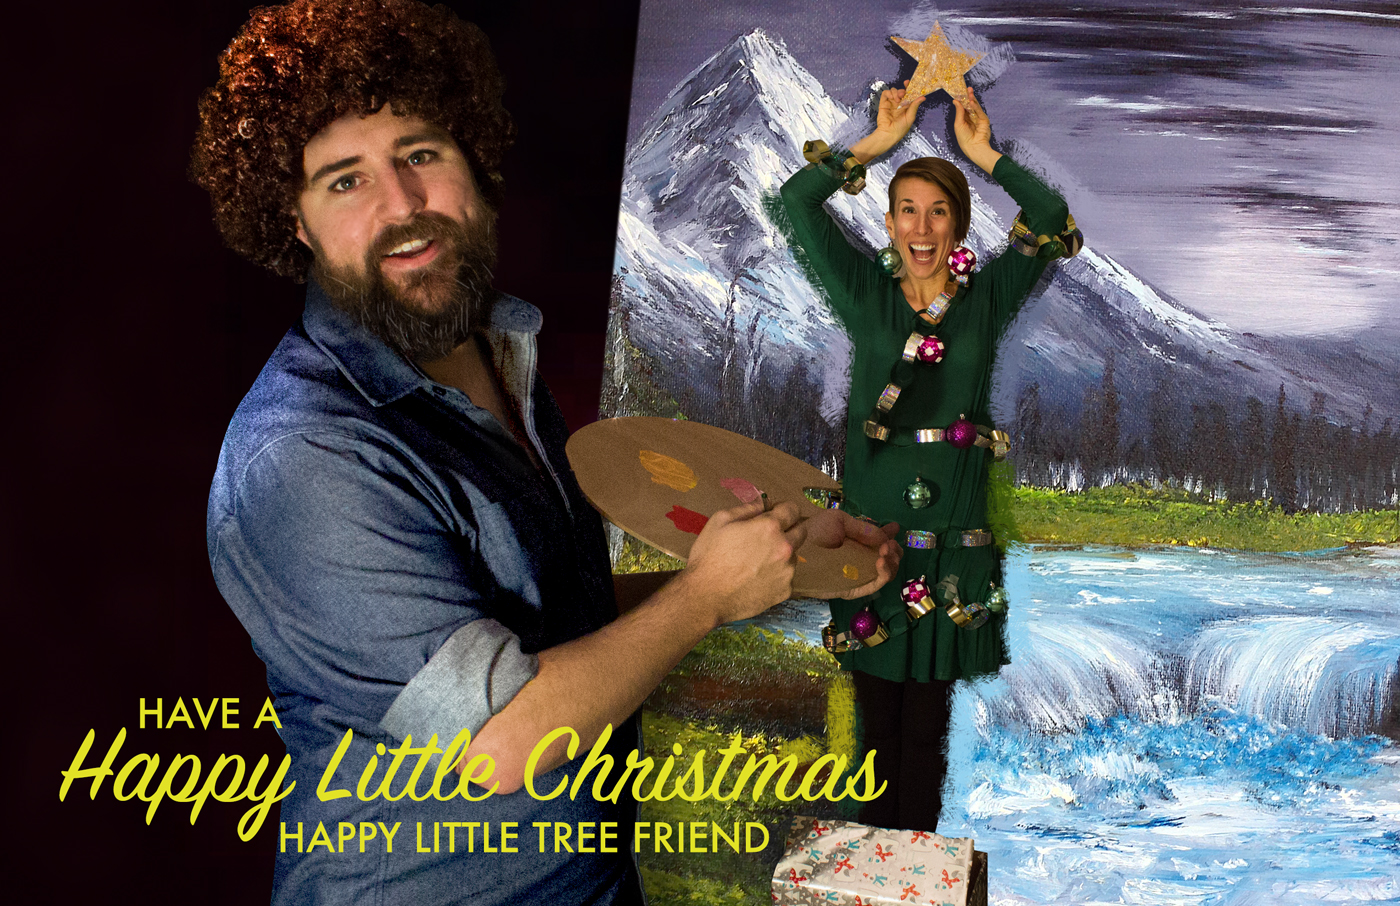 Have a Happy Little Christmas. Bob Ross paints a womenly tree.